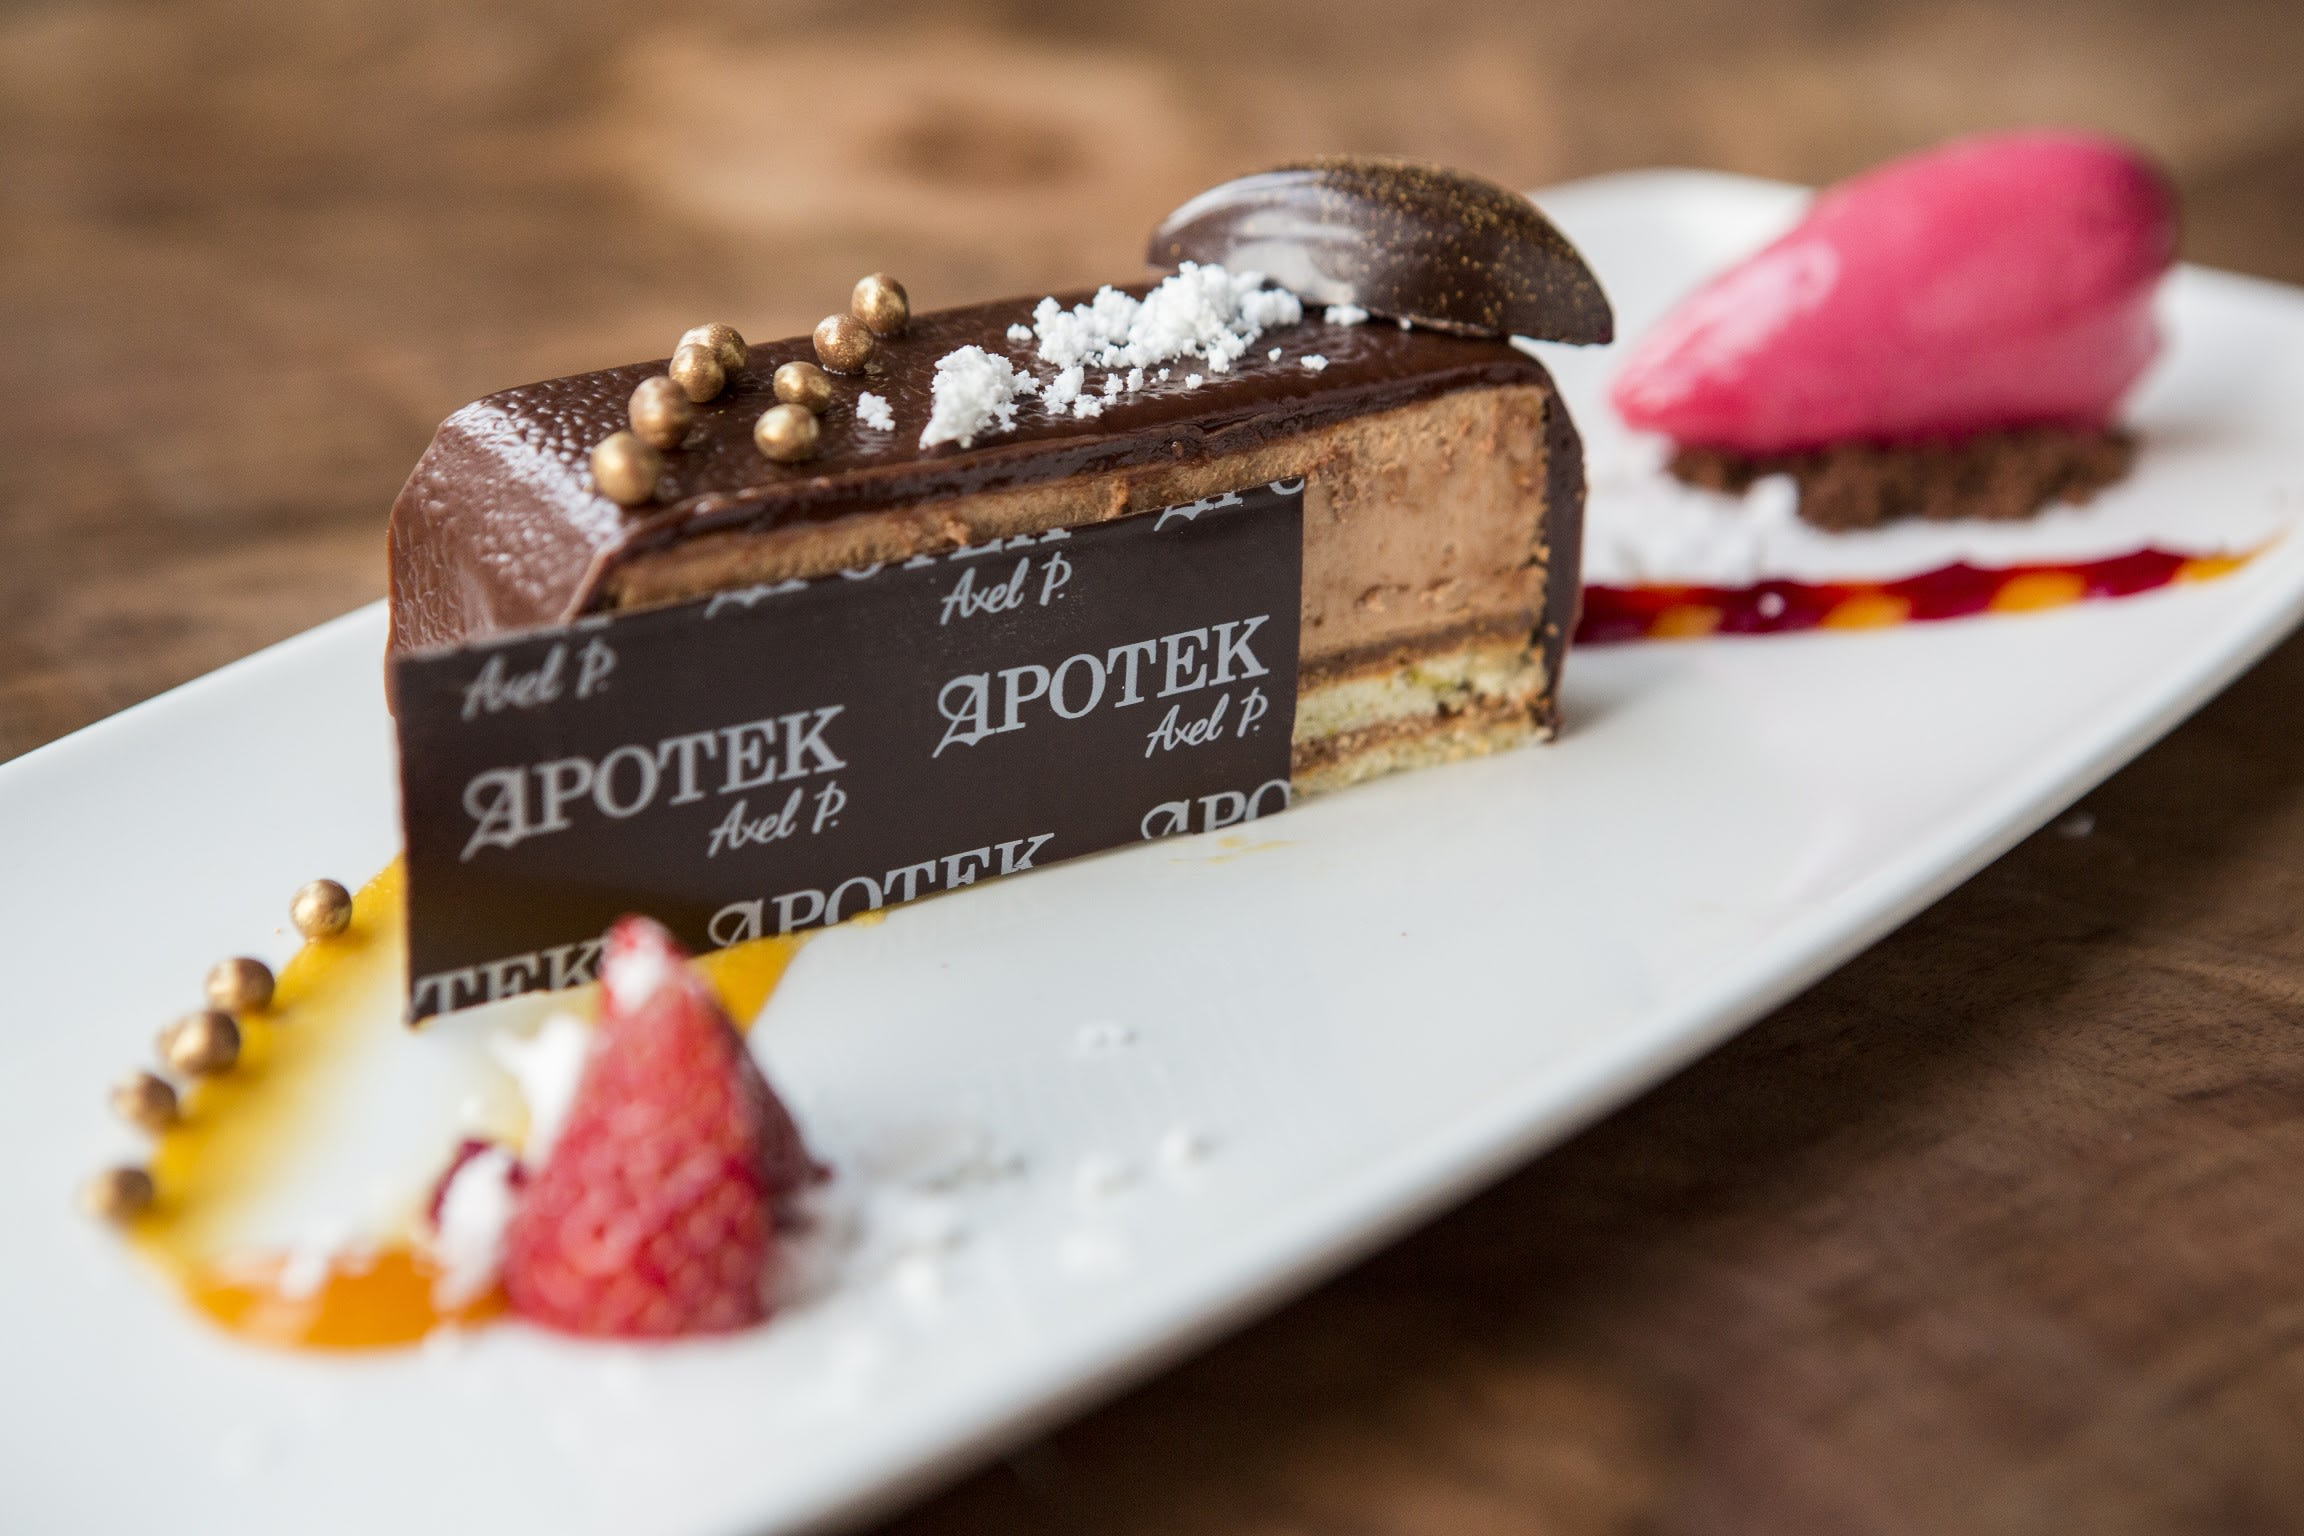 a close up of a chocolate cream cake with a chocolate decoration that reads 'Apotek'